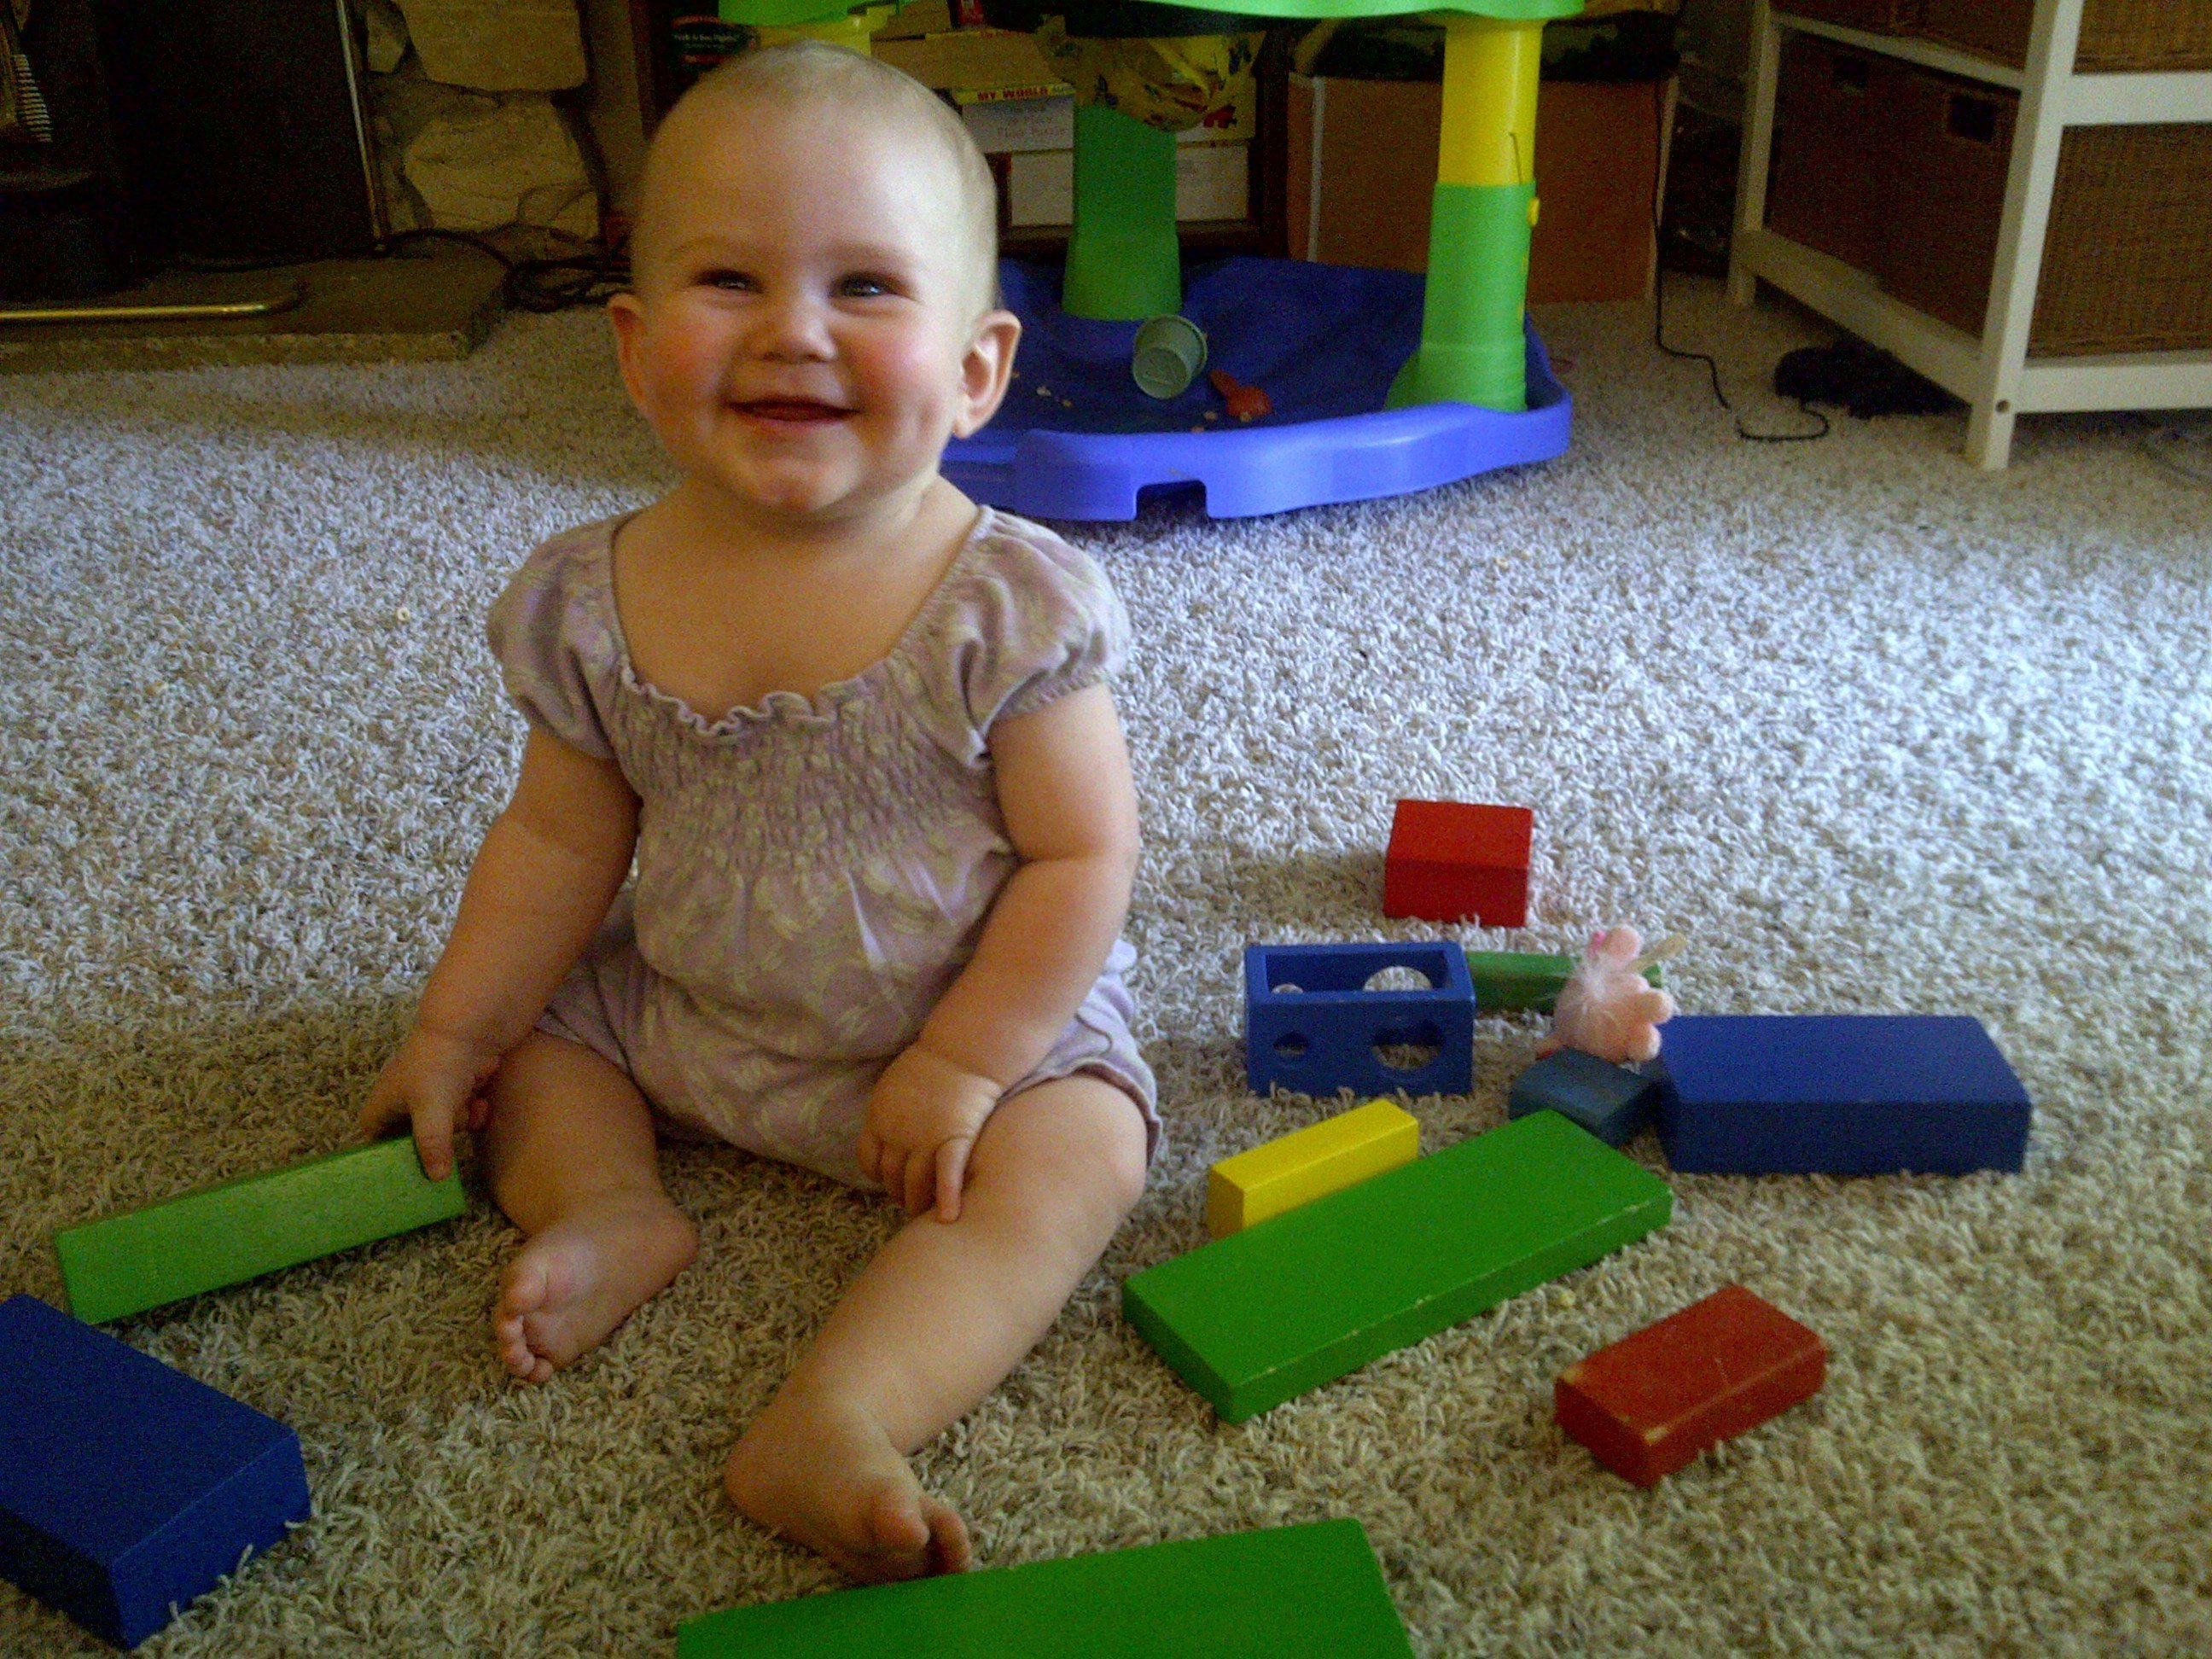 not making the milk sign, but still damn cute playing with blocks